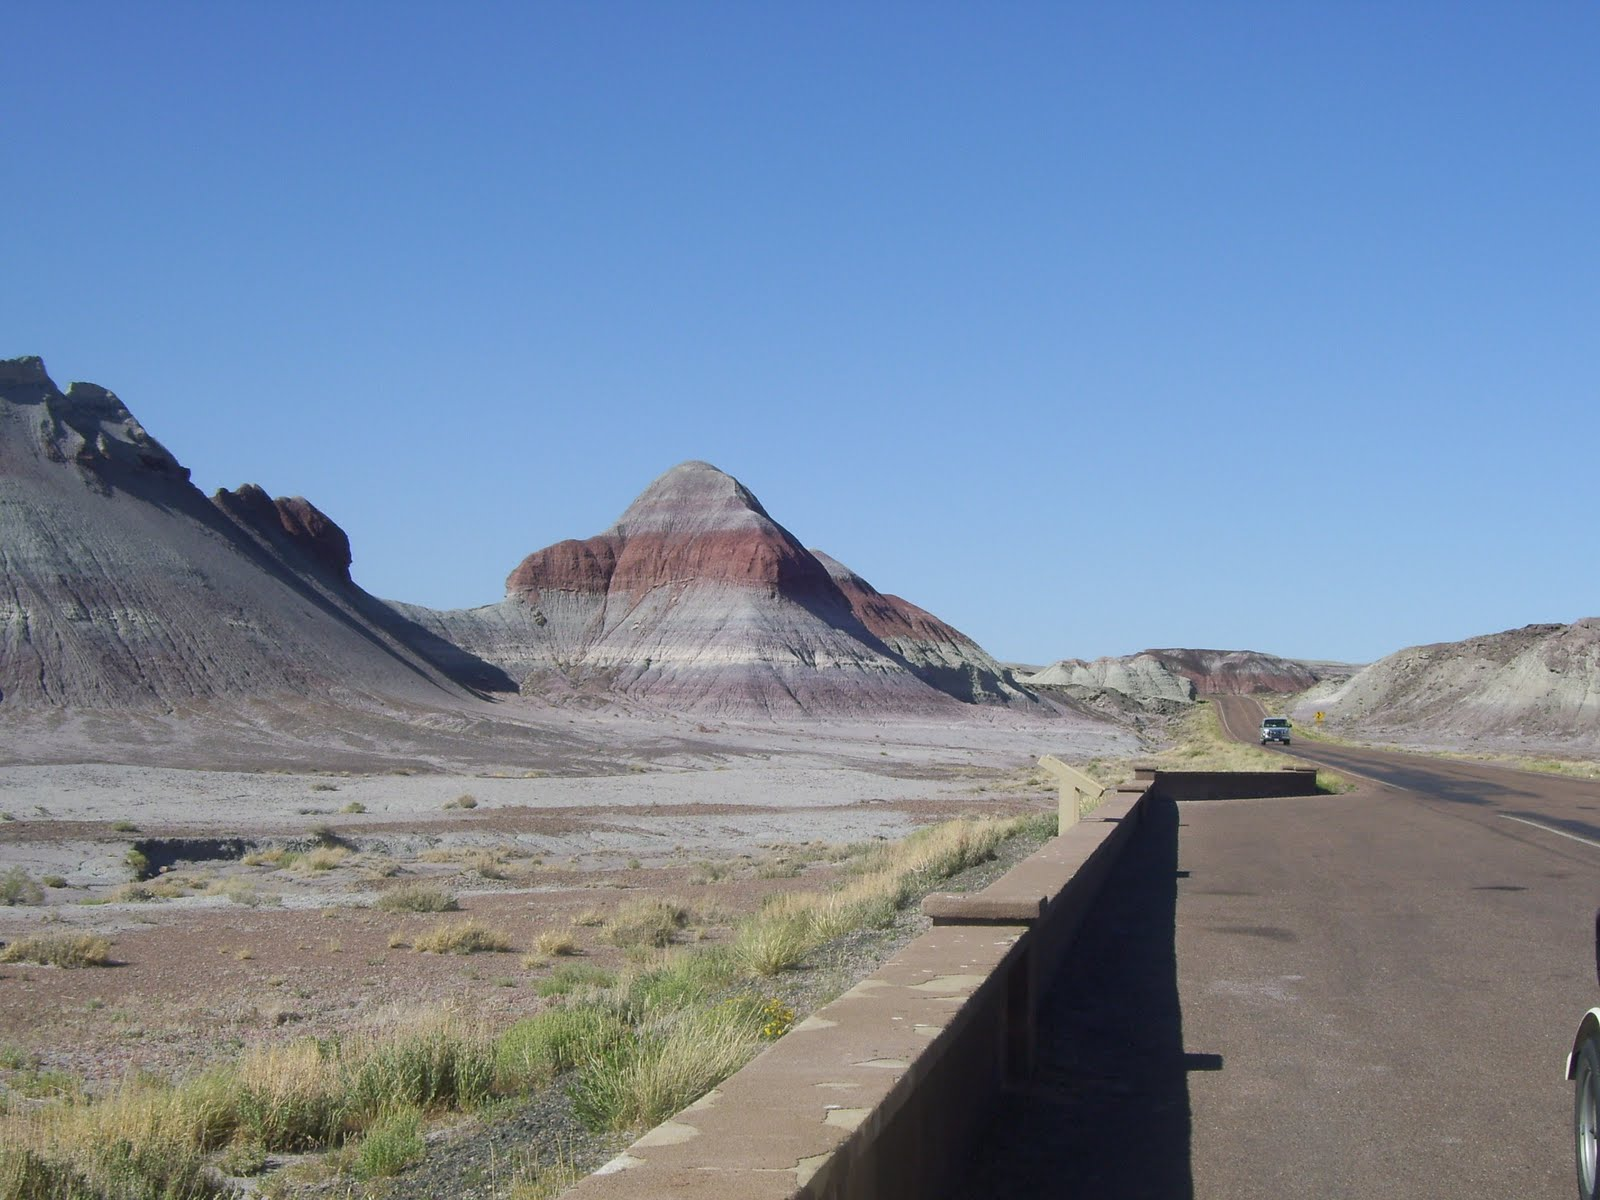 Car Rental Gallup Nm ART ON THE GO!!: Traveling Through Teepees...an update of sorts.